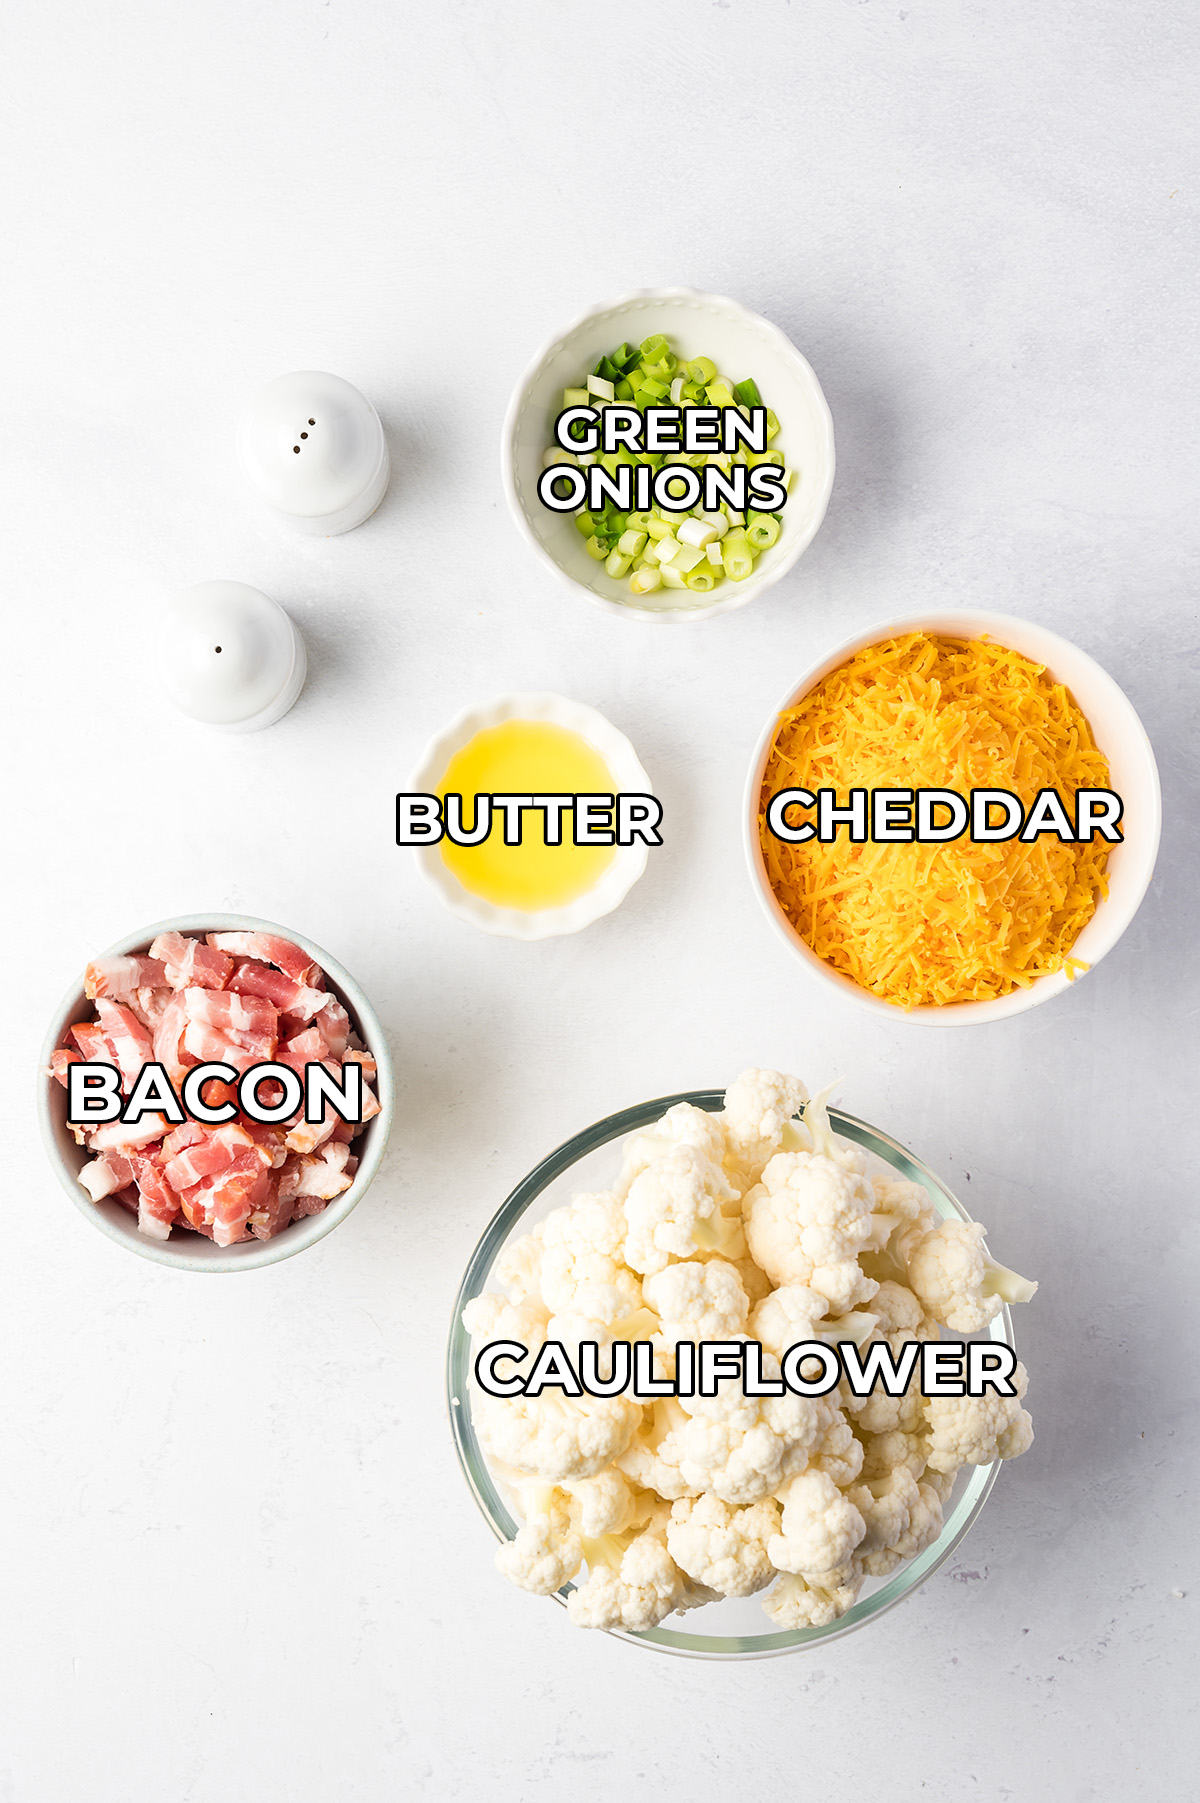 ingredients for loaded cauliflower all spread out